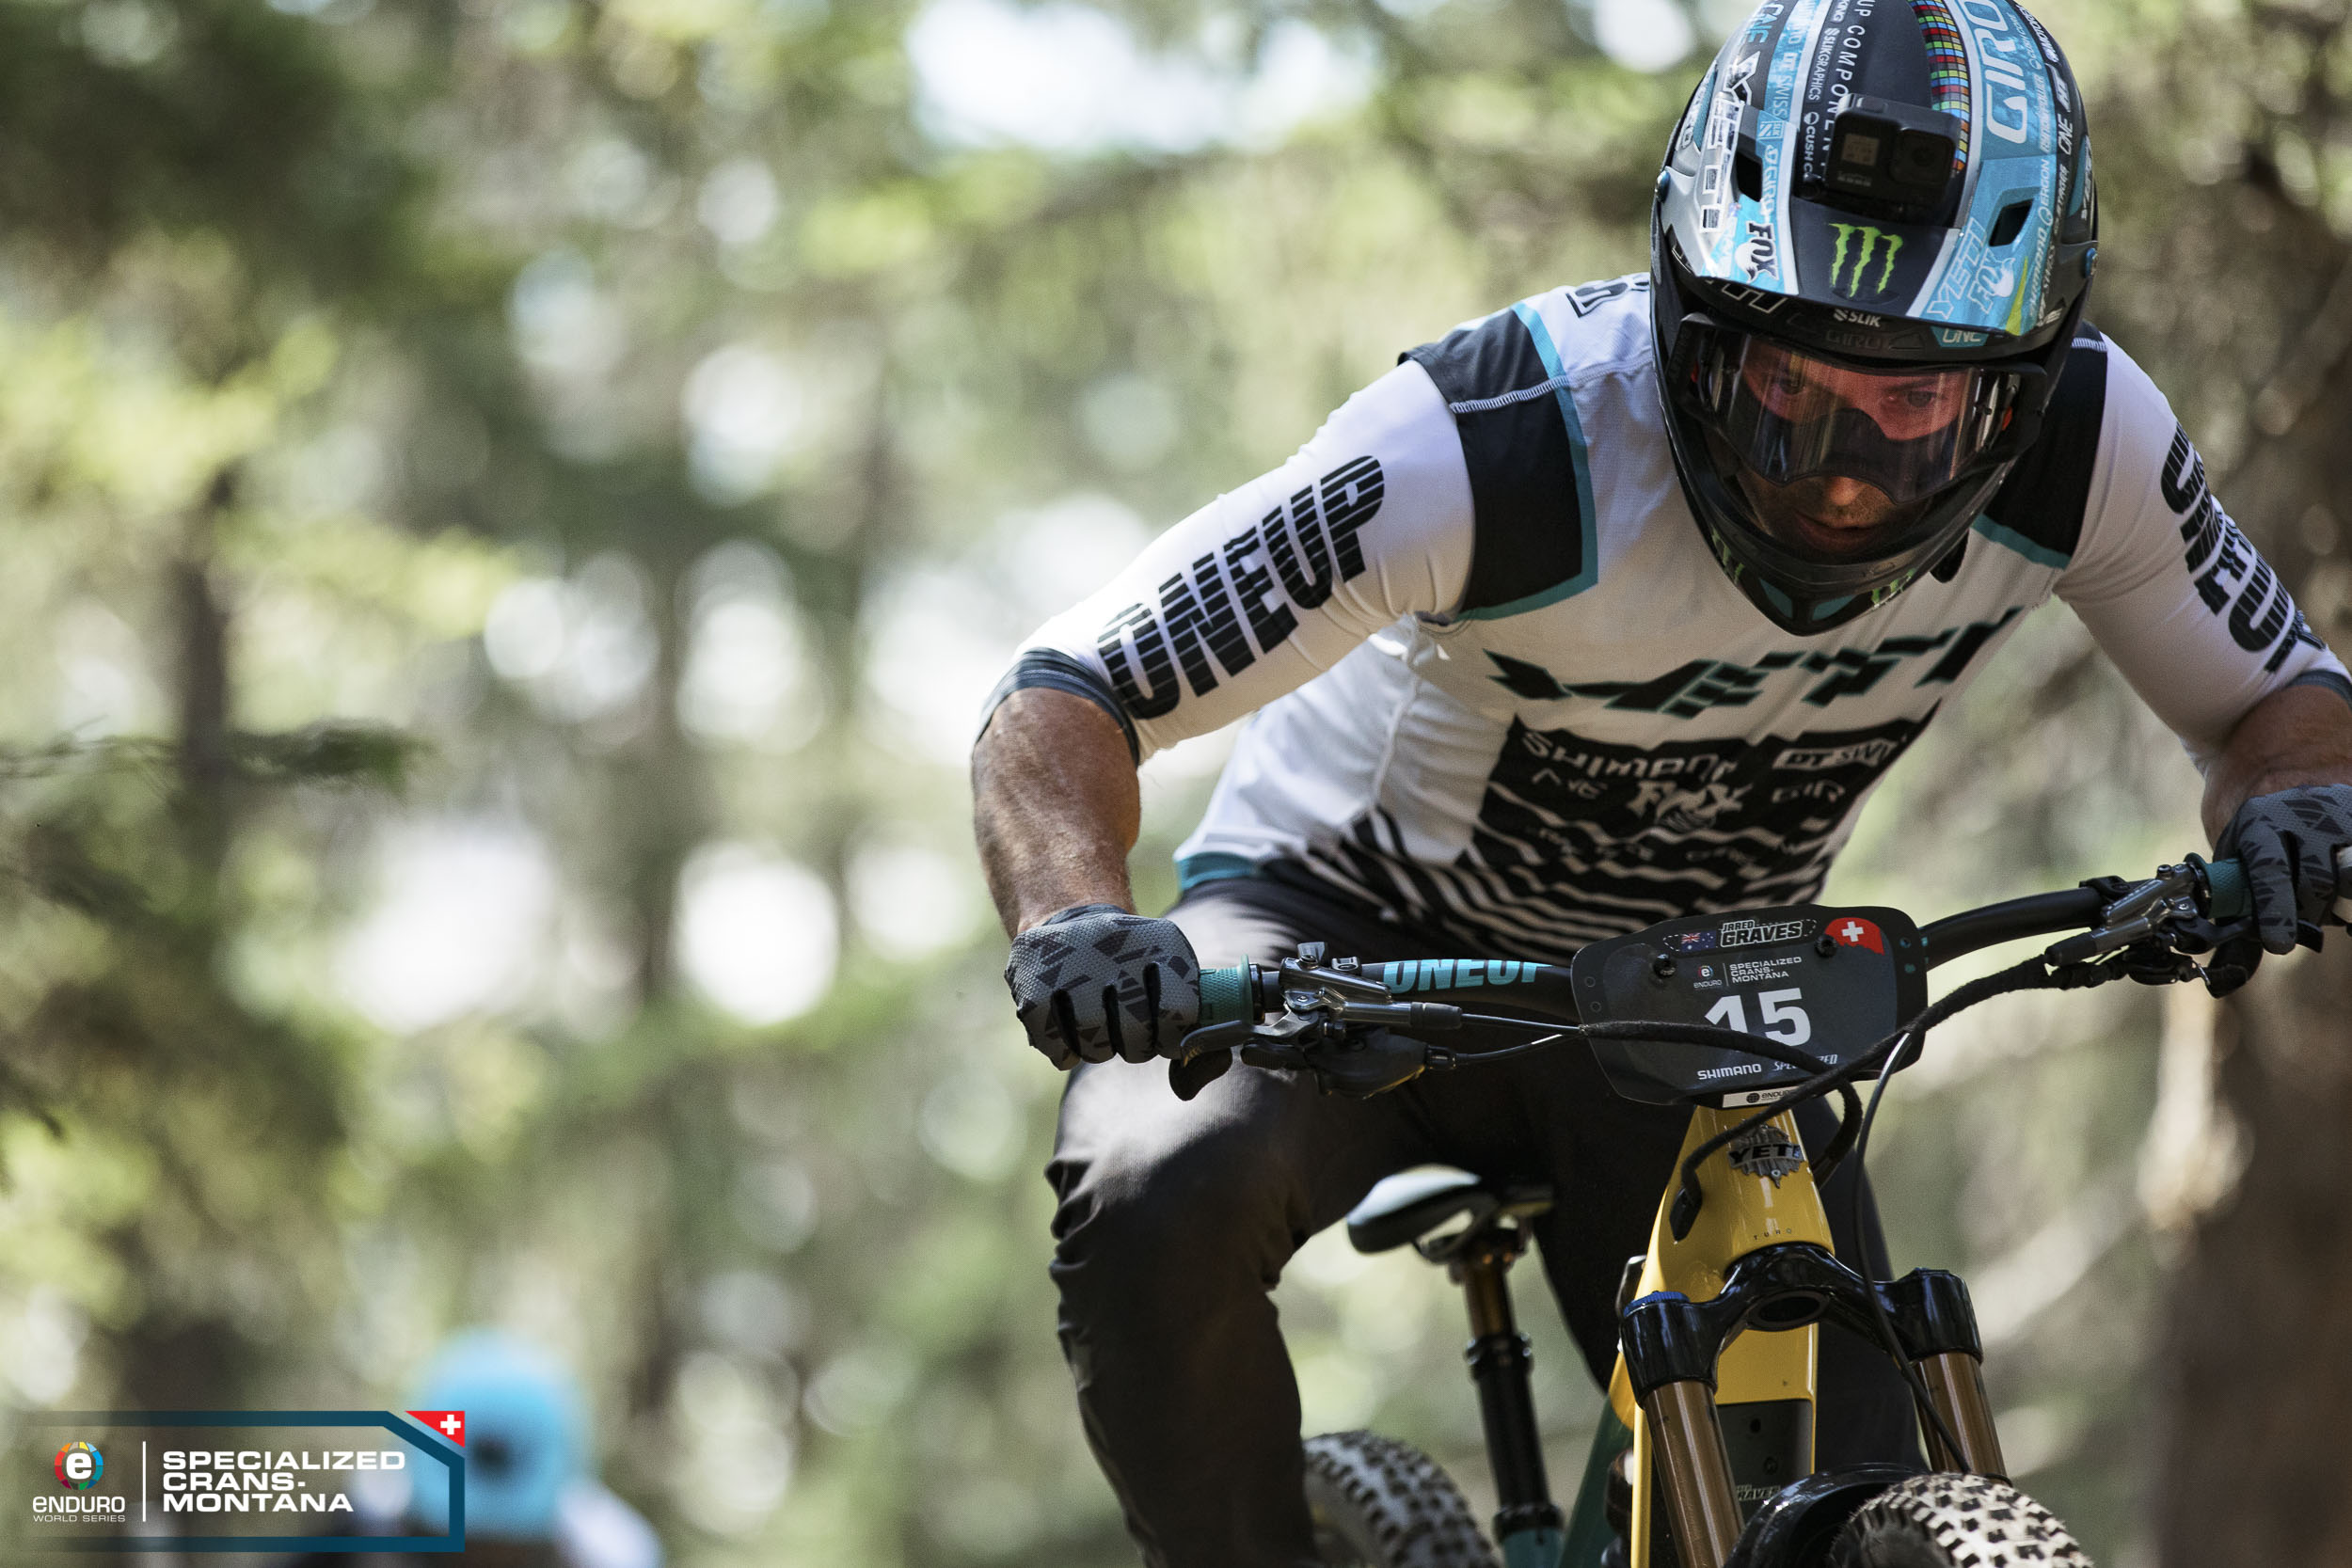 Jared Graves in between the tape in his first EWS-E race.